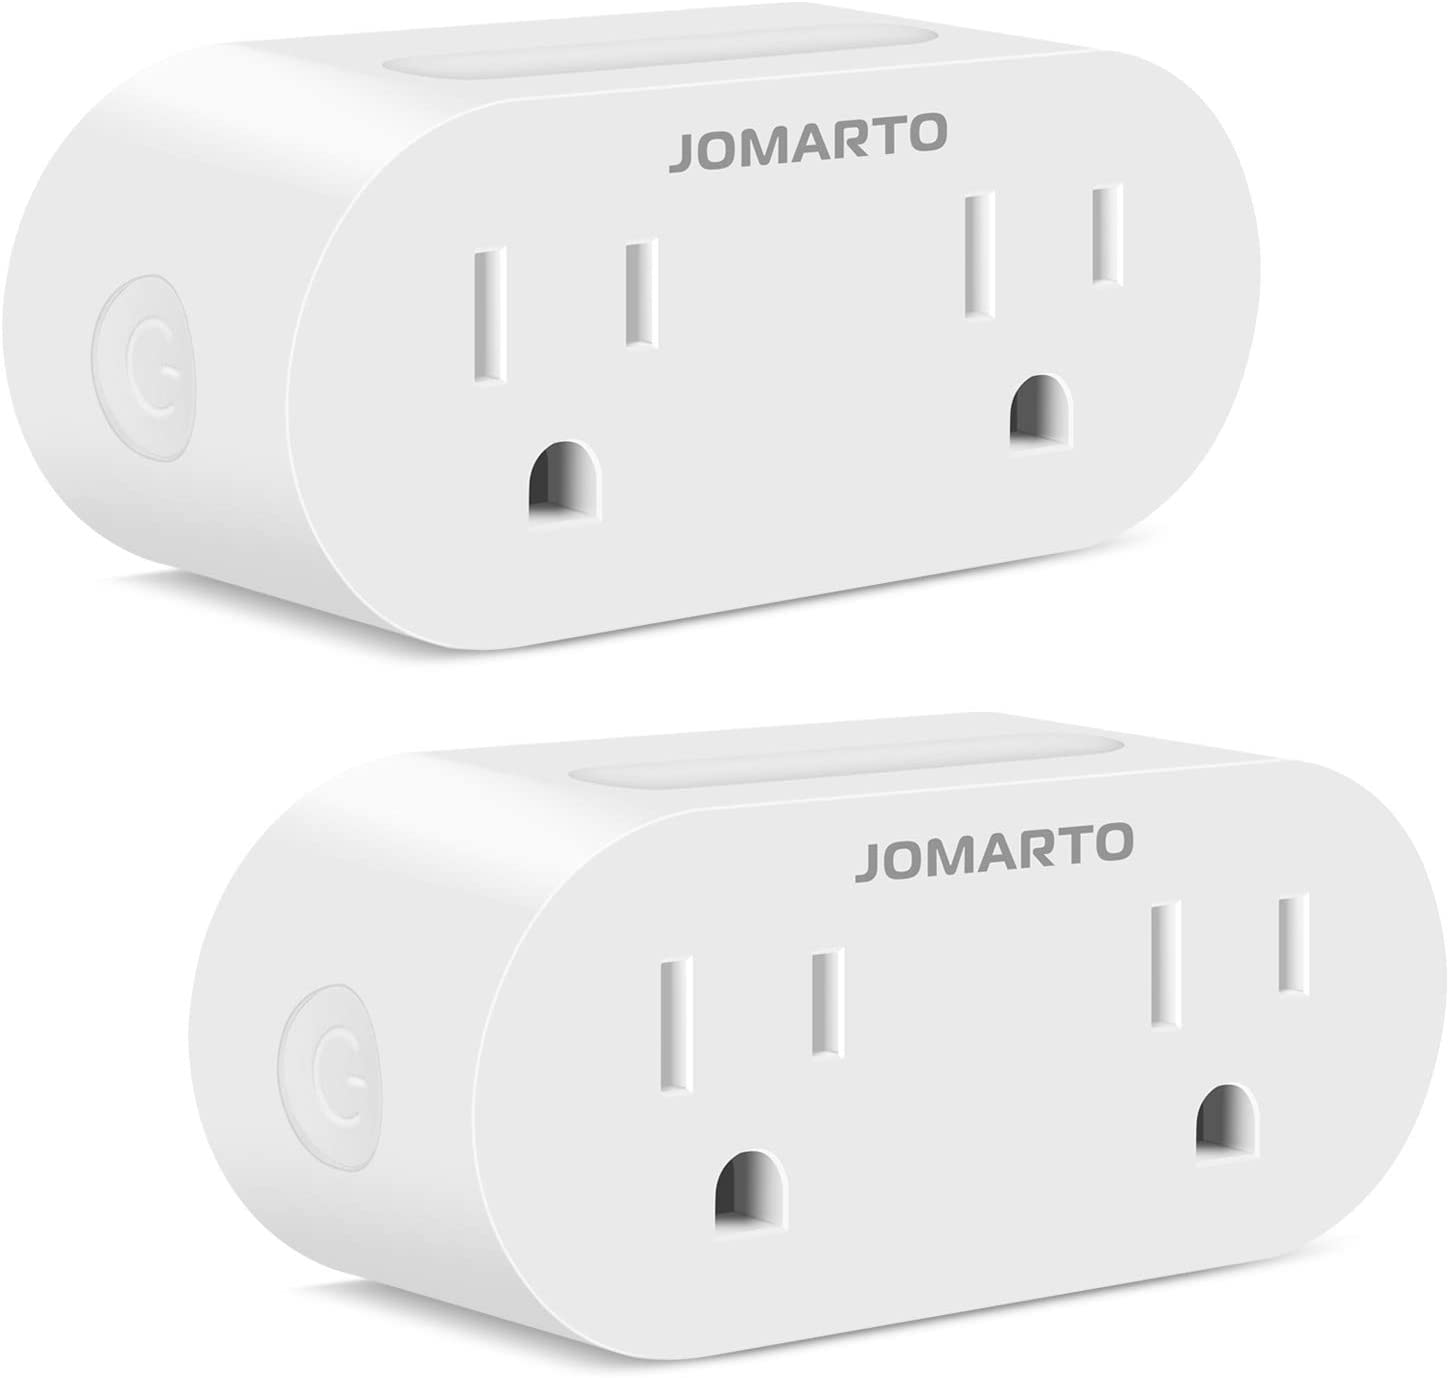 WiFi Smart Plug Outlet, 2 Pack Mini Smart Socket Compatible with Alexa, Google Home and IFTTT, APP Remote Control and Timer Function No Hub Required (Two Rectangle)